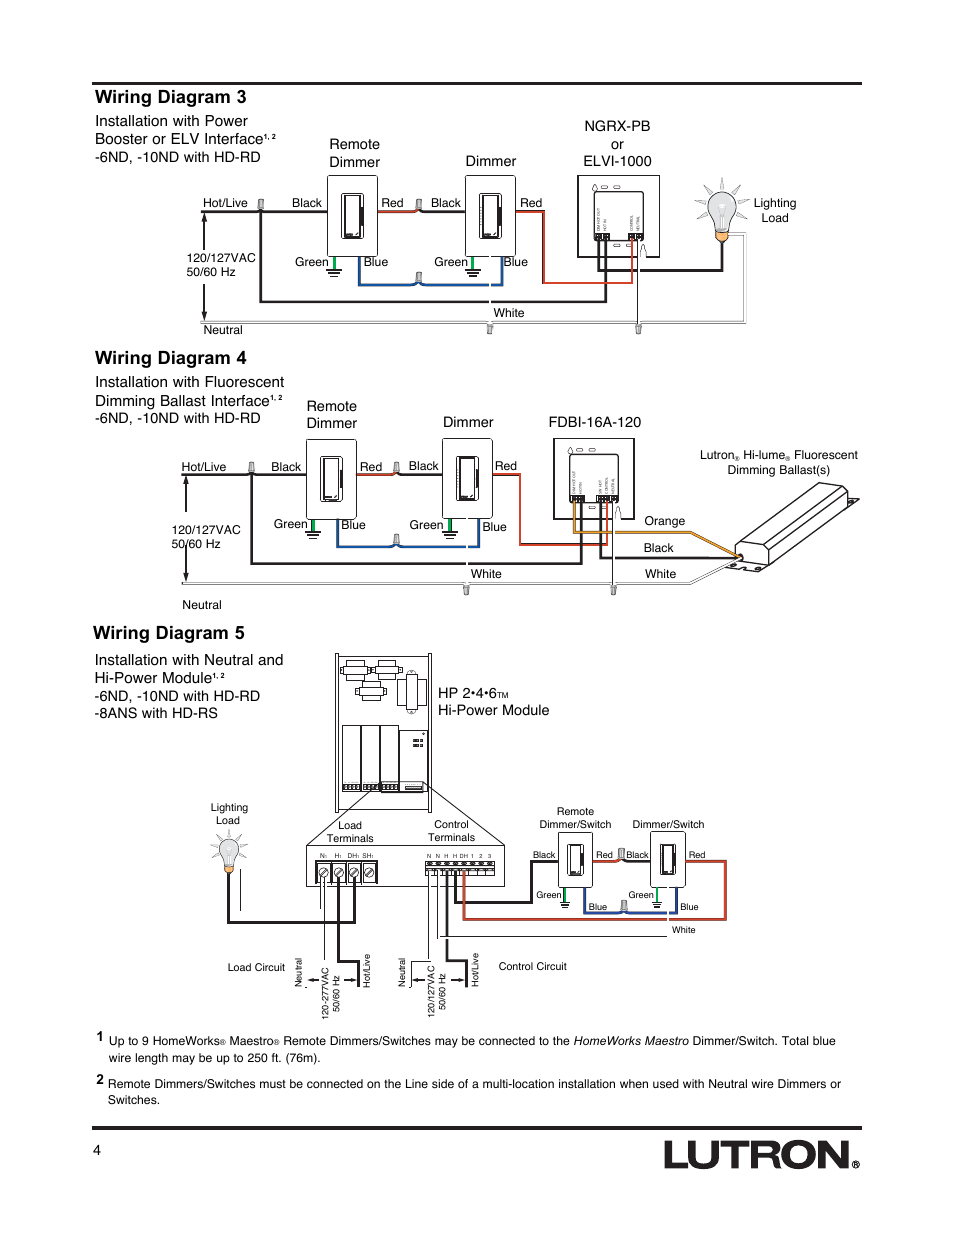 hight resolution of wiring diagram 3 wiring diagram 4 wiring diagram 5 lutron hd rswiring diagram 3